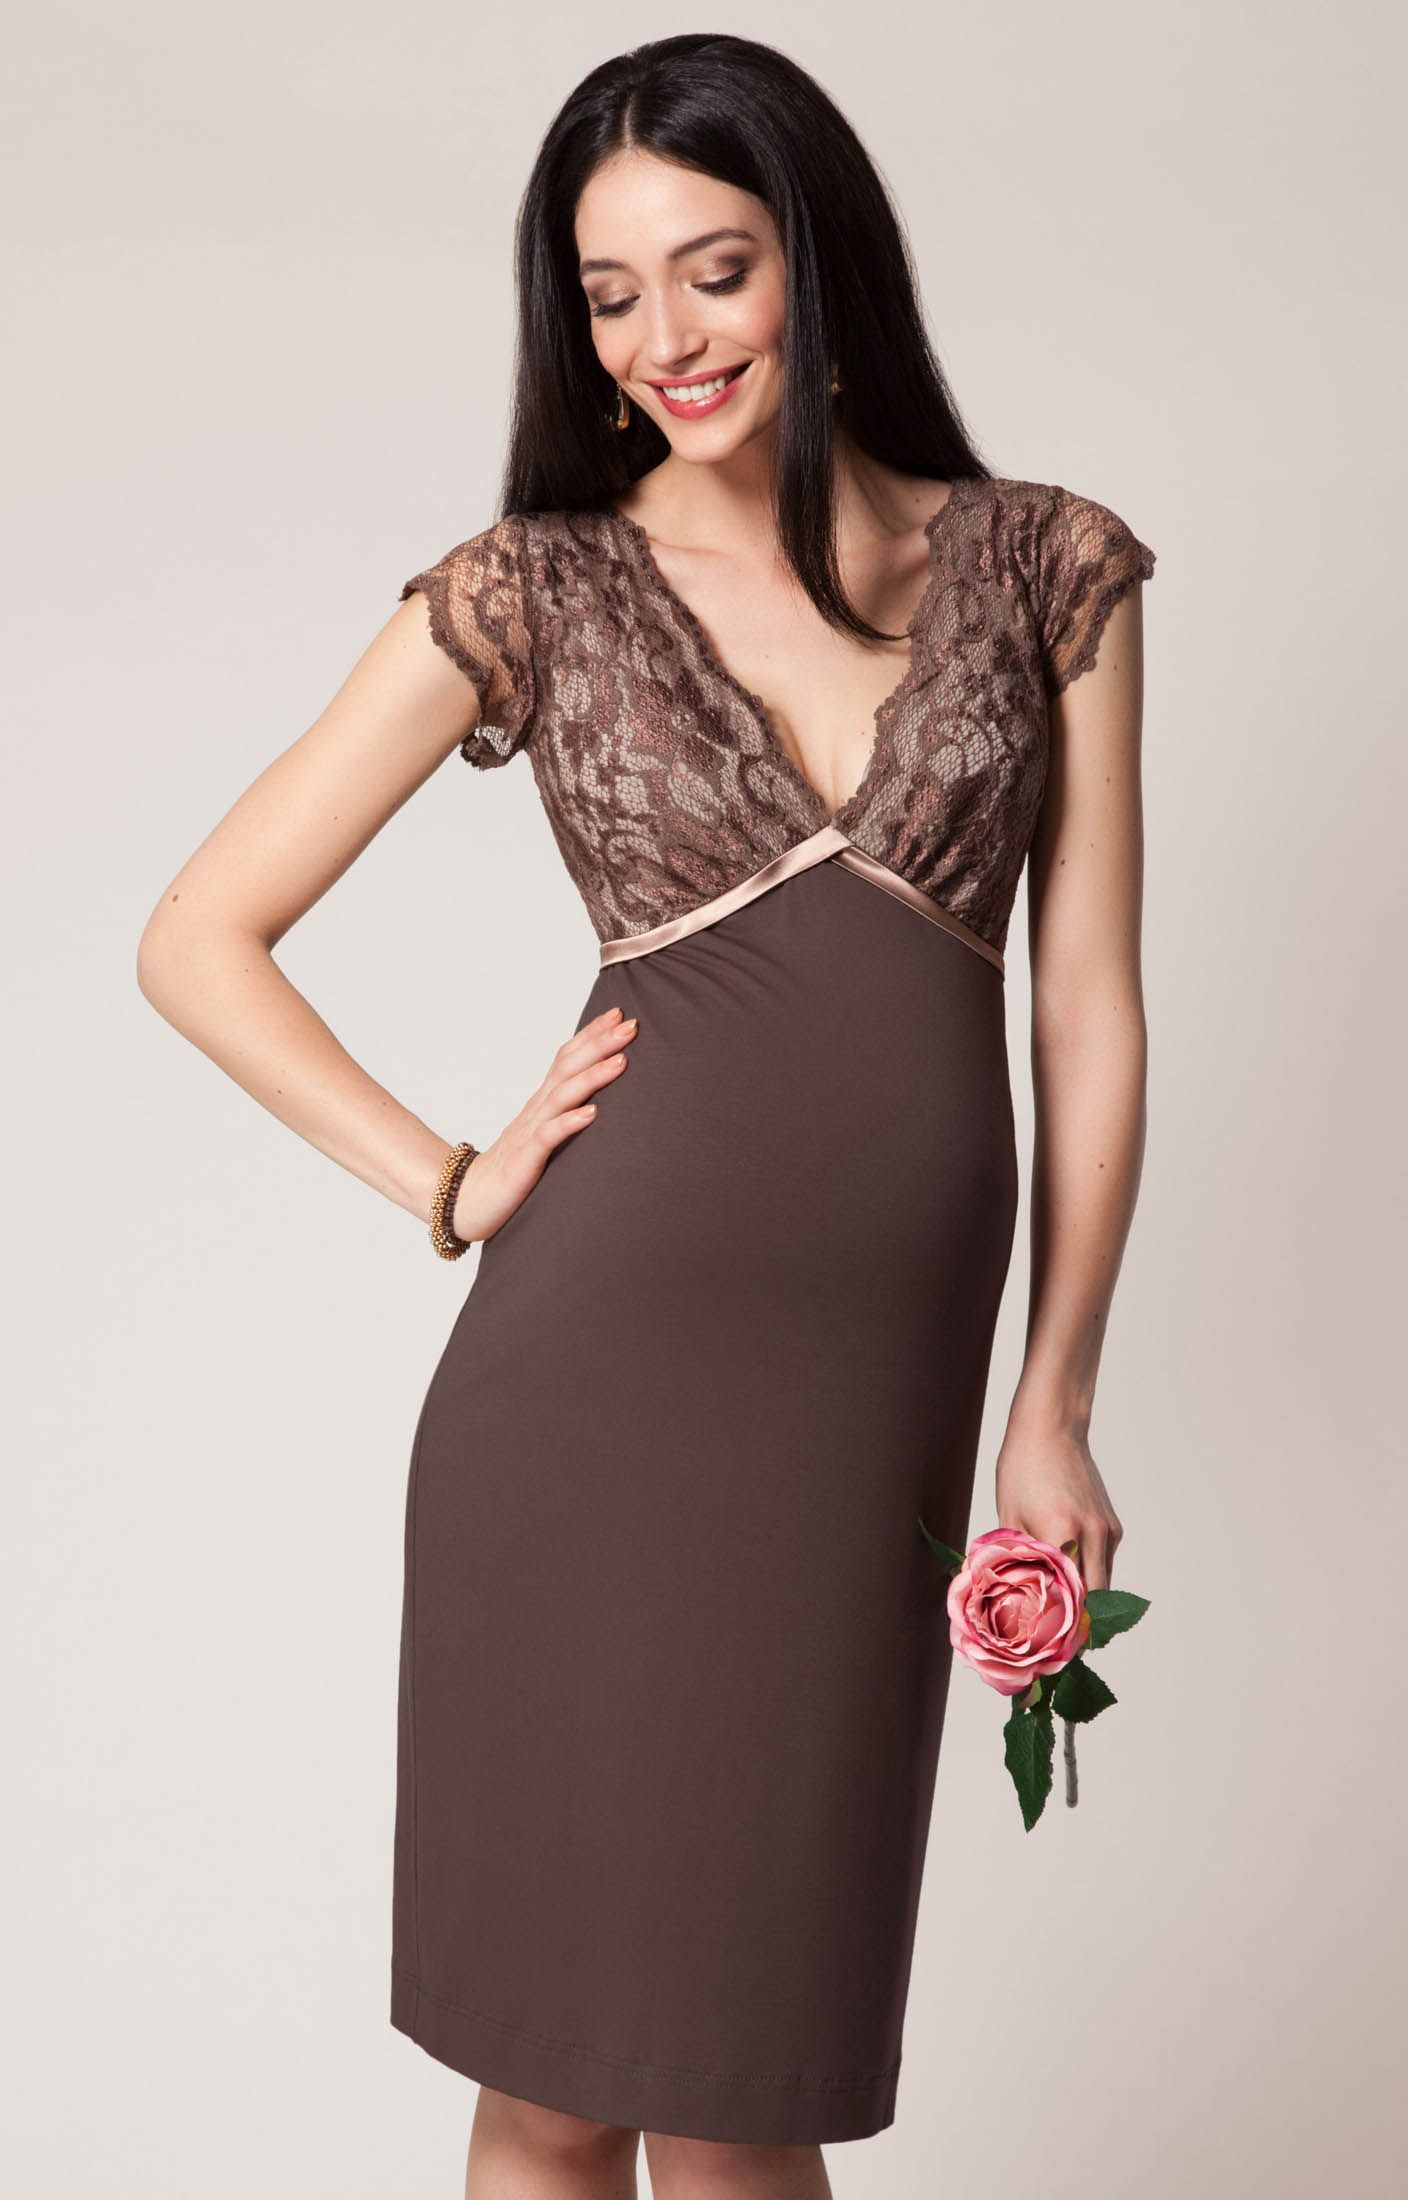 5adde8d3464b0 11. Long maternity dresses for special occasions | Plus Size ...